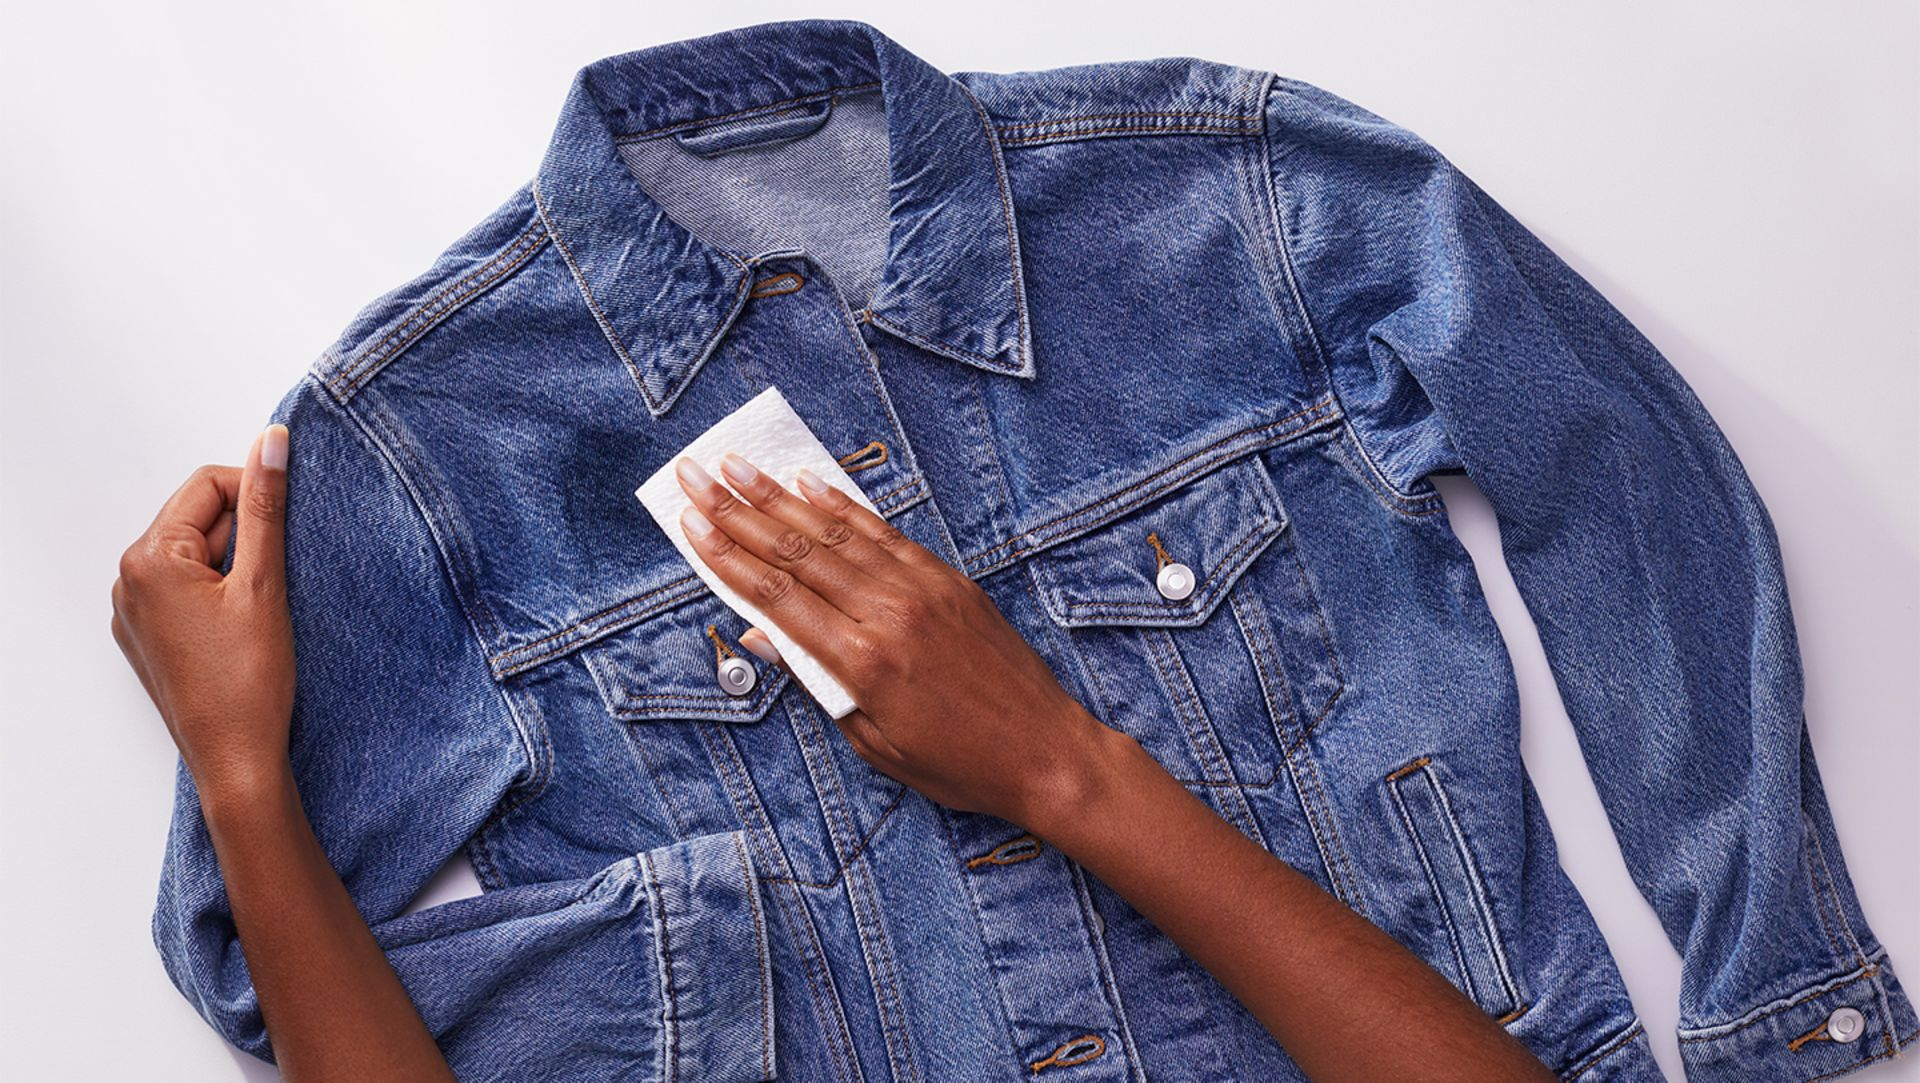 A person removing excess stain from a denim jacket with a paper towel